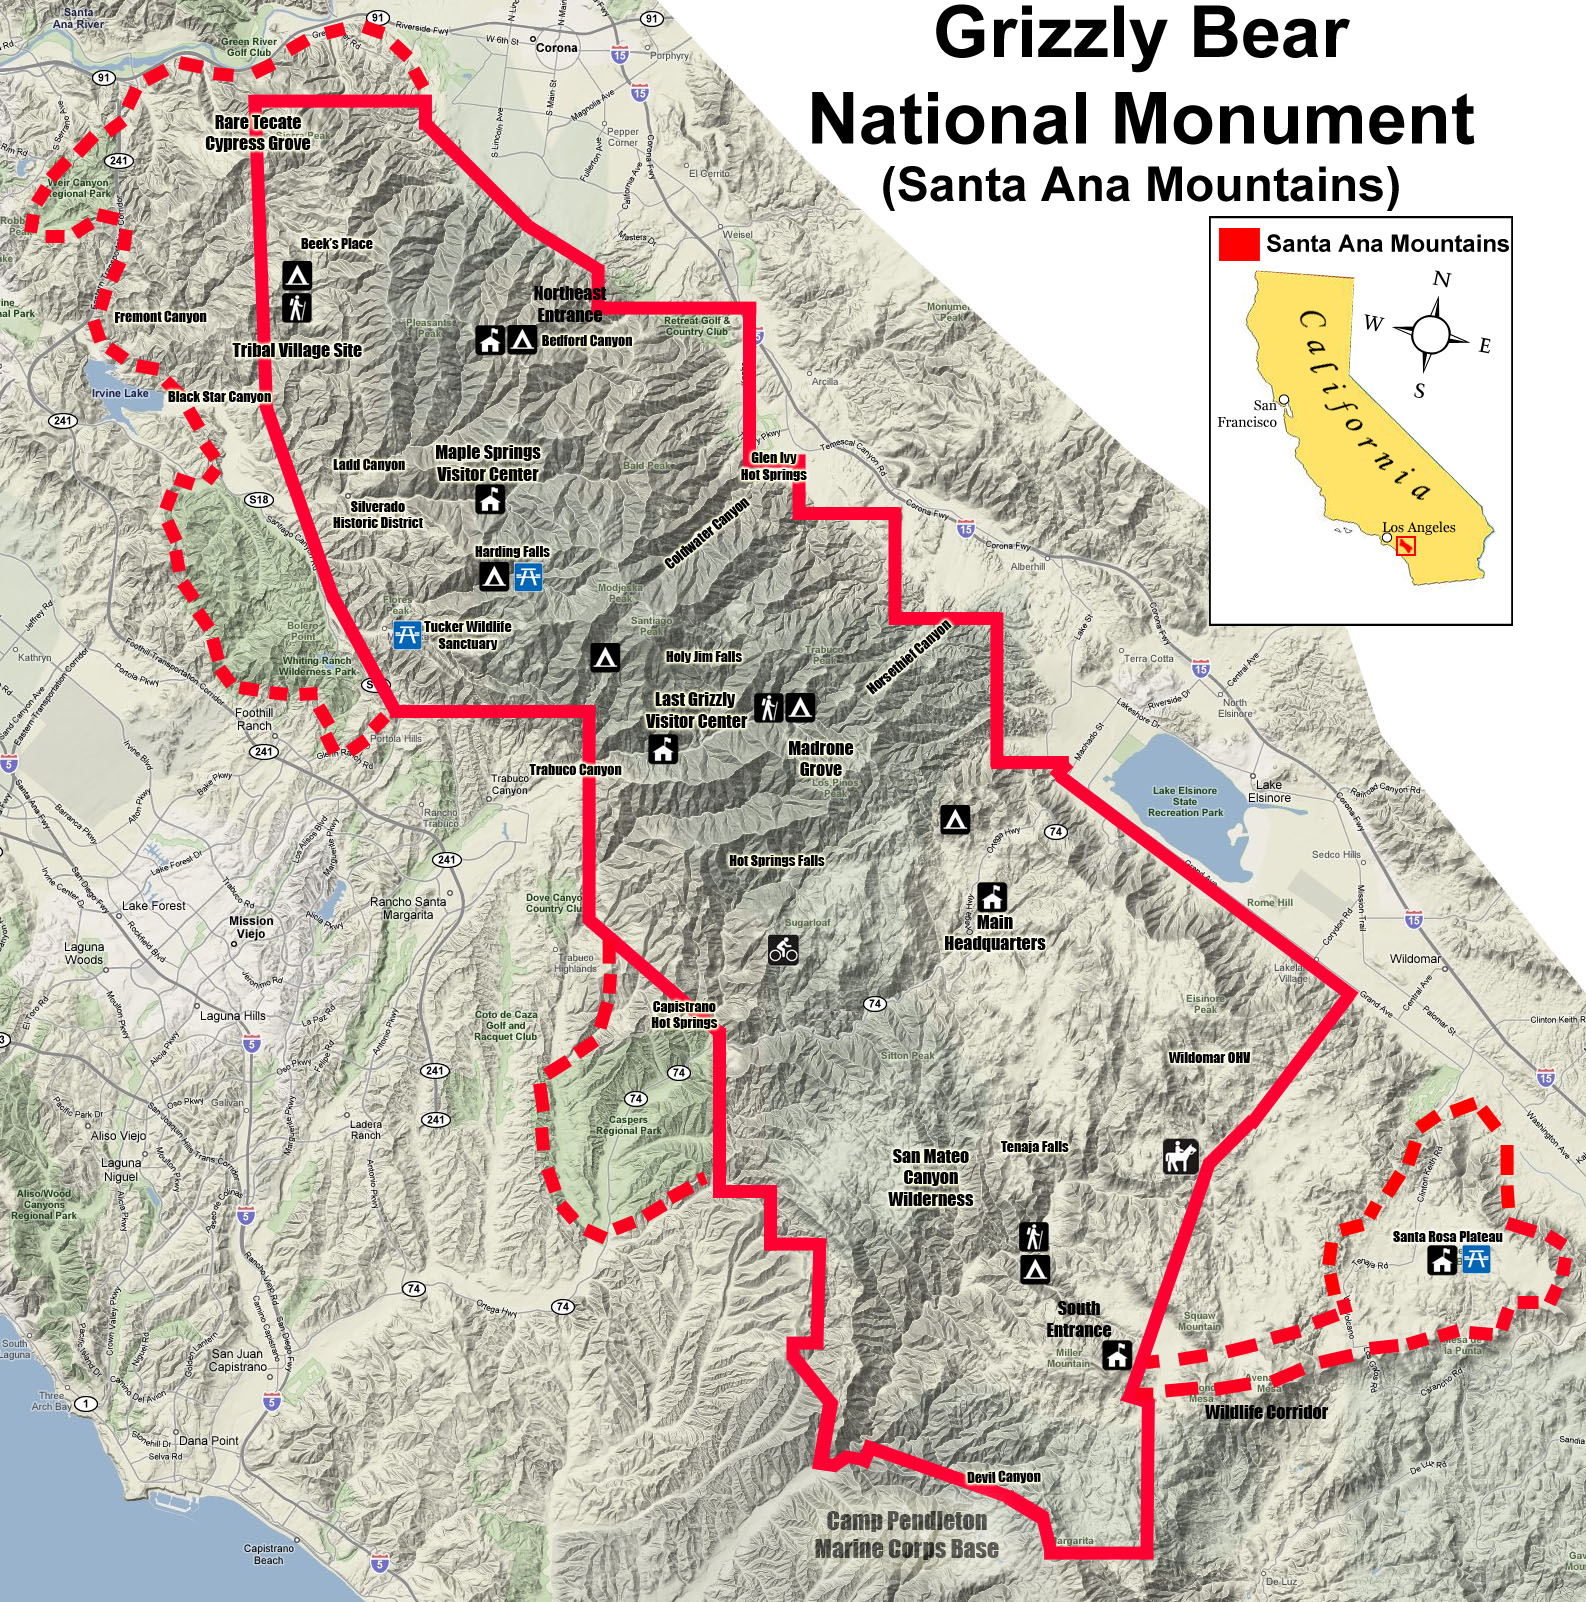 Grizzly Bear National Monument Vision